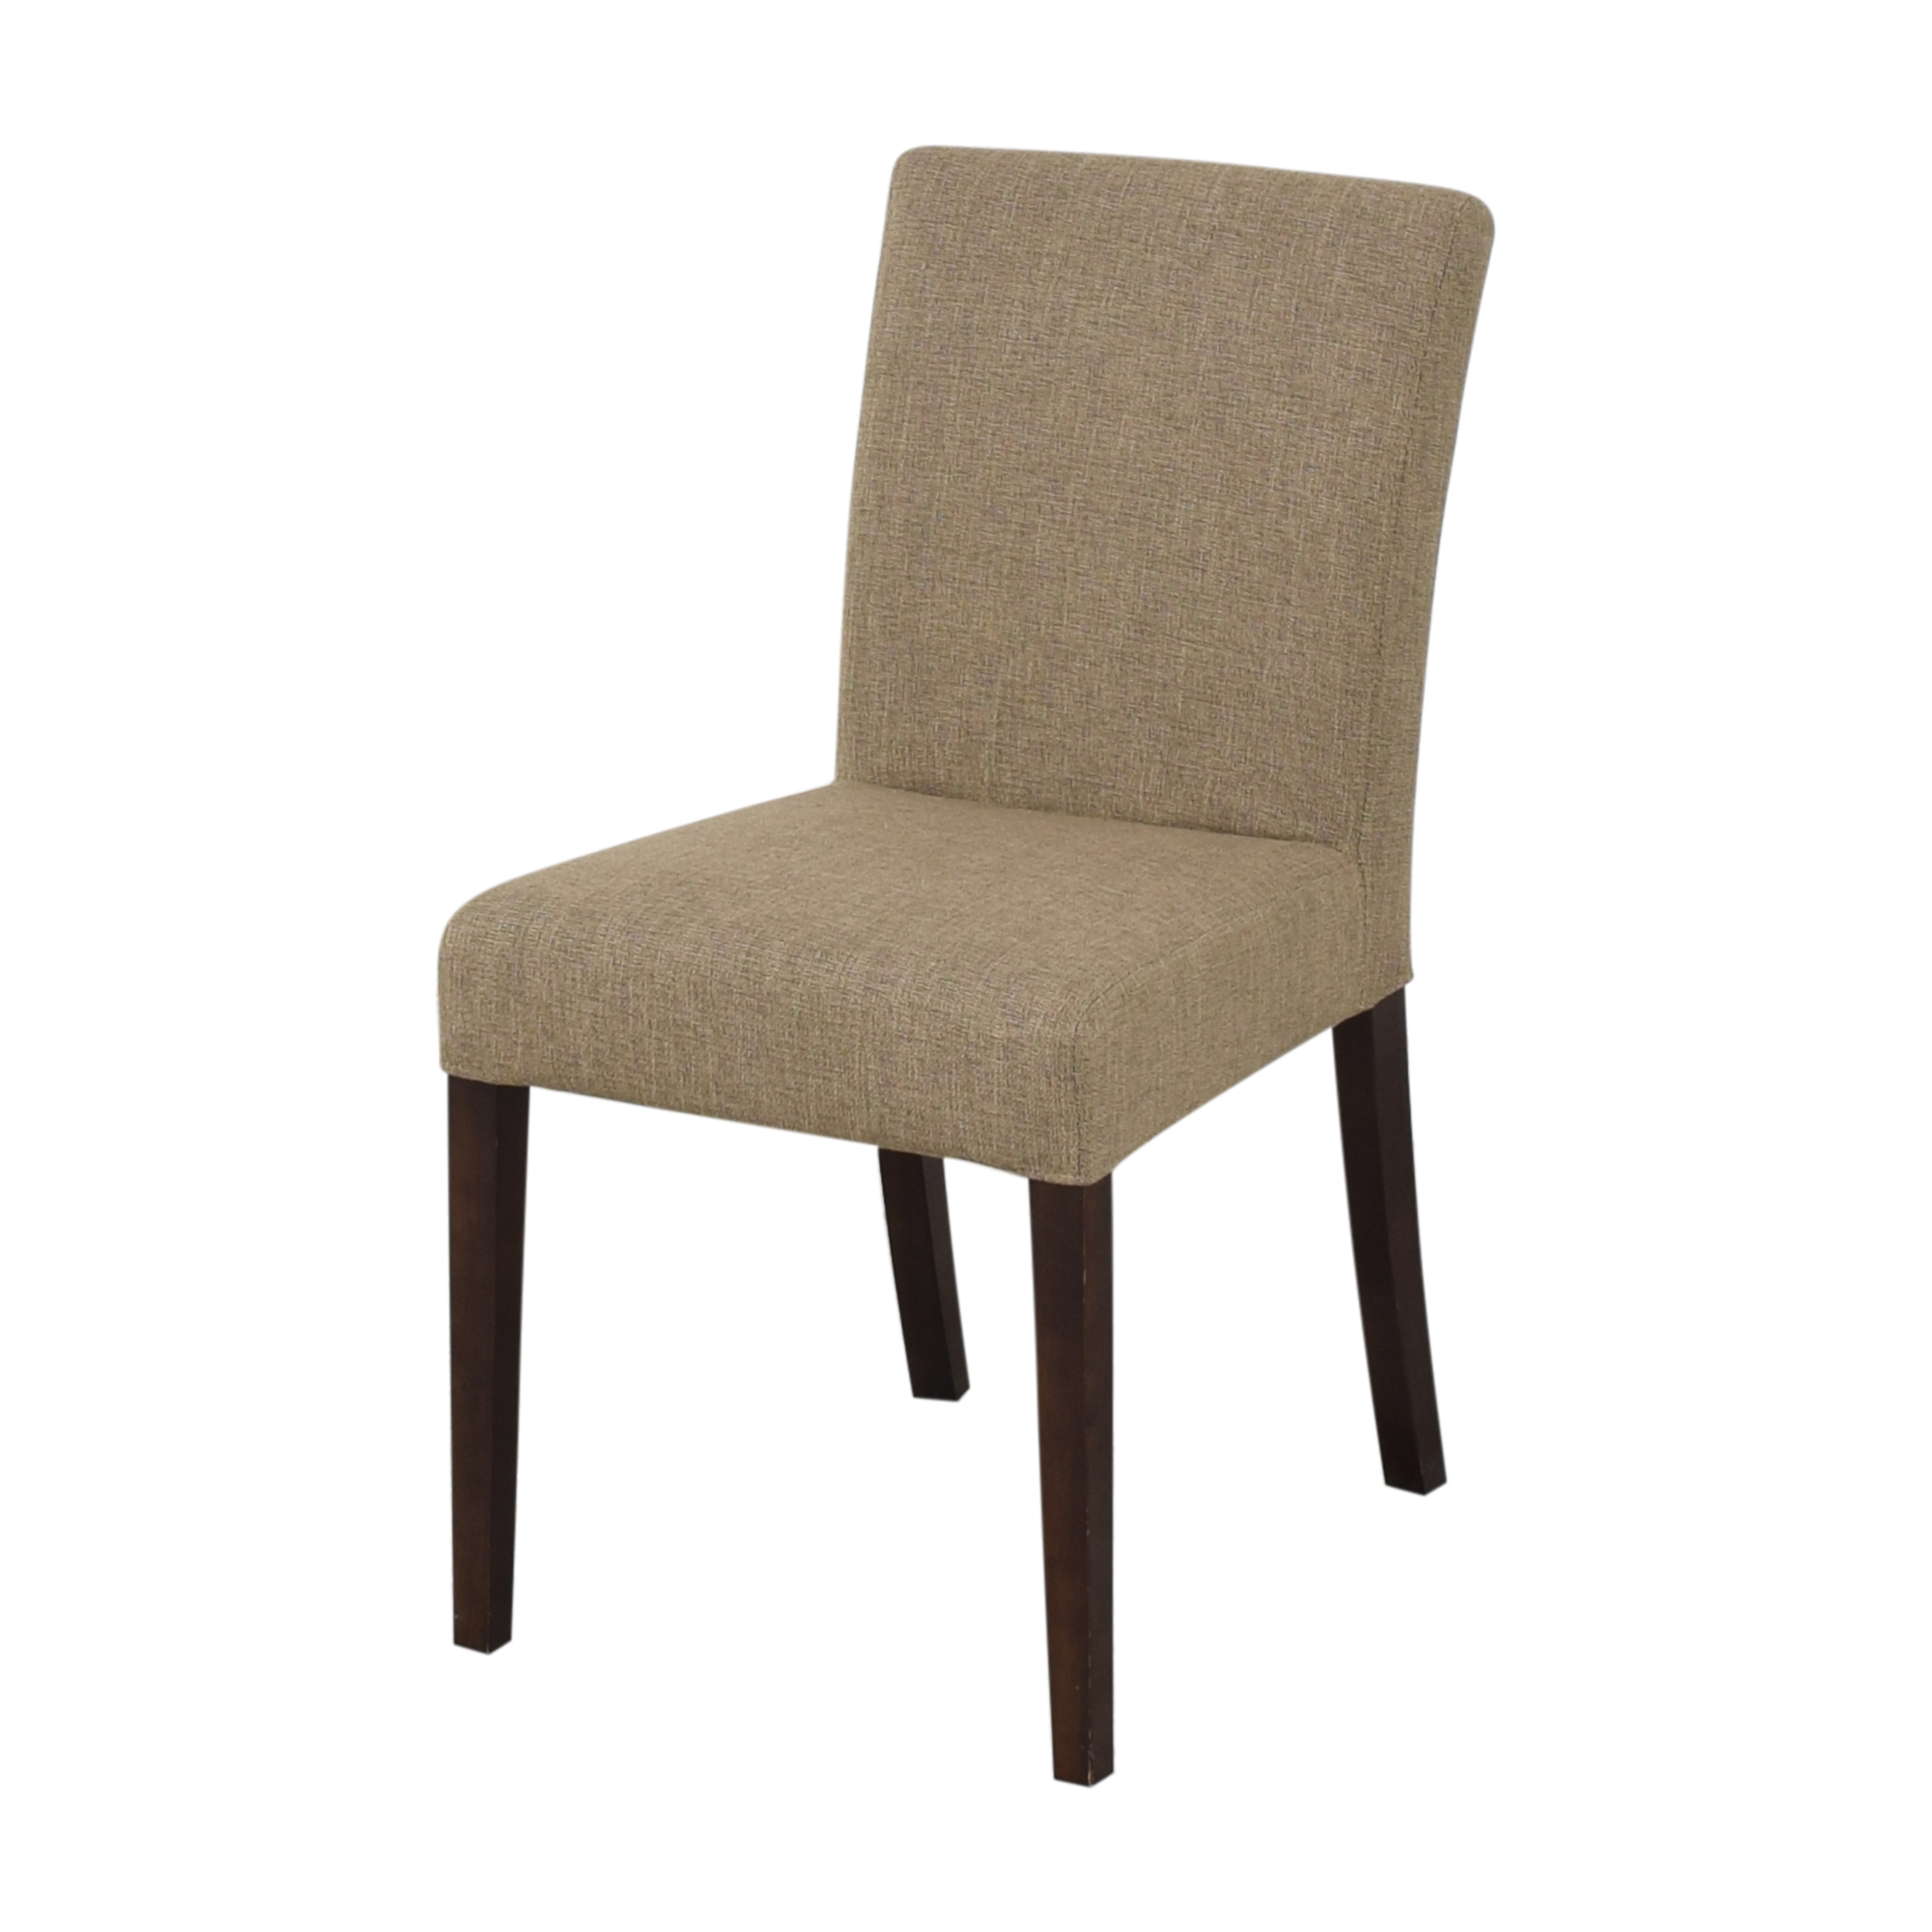 Crate & Barrel Crate & Barrel Lowe Dining Chairs second hand